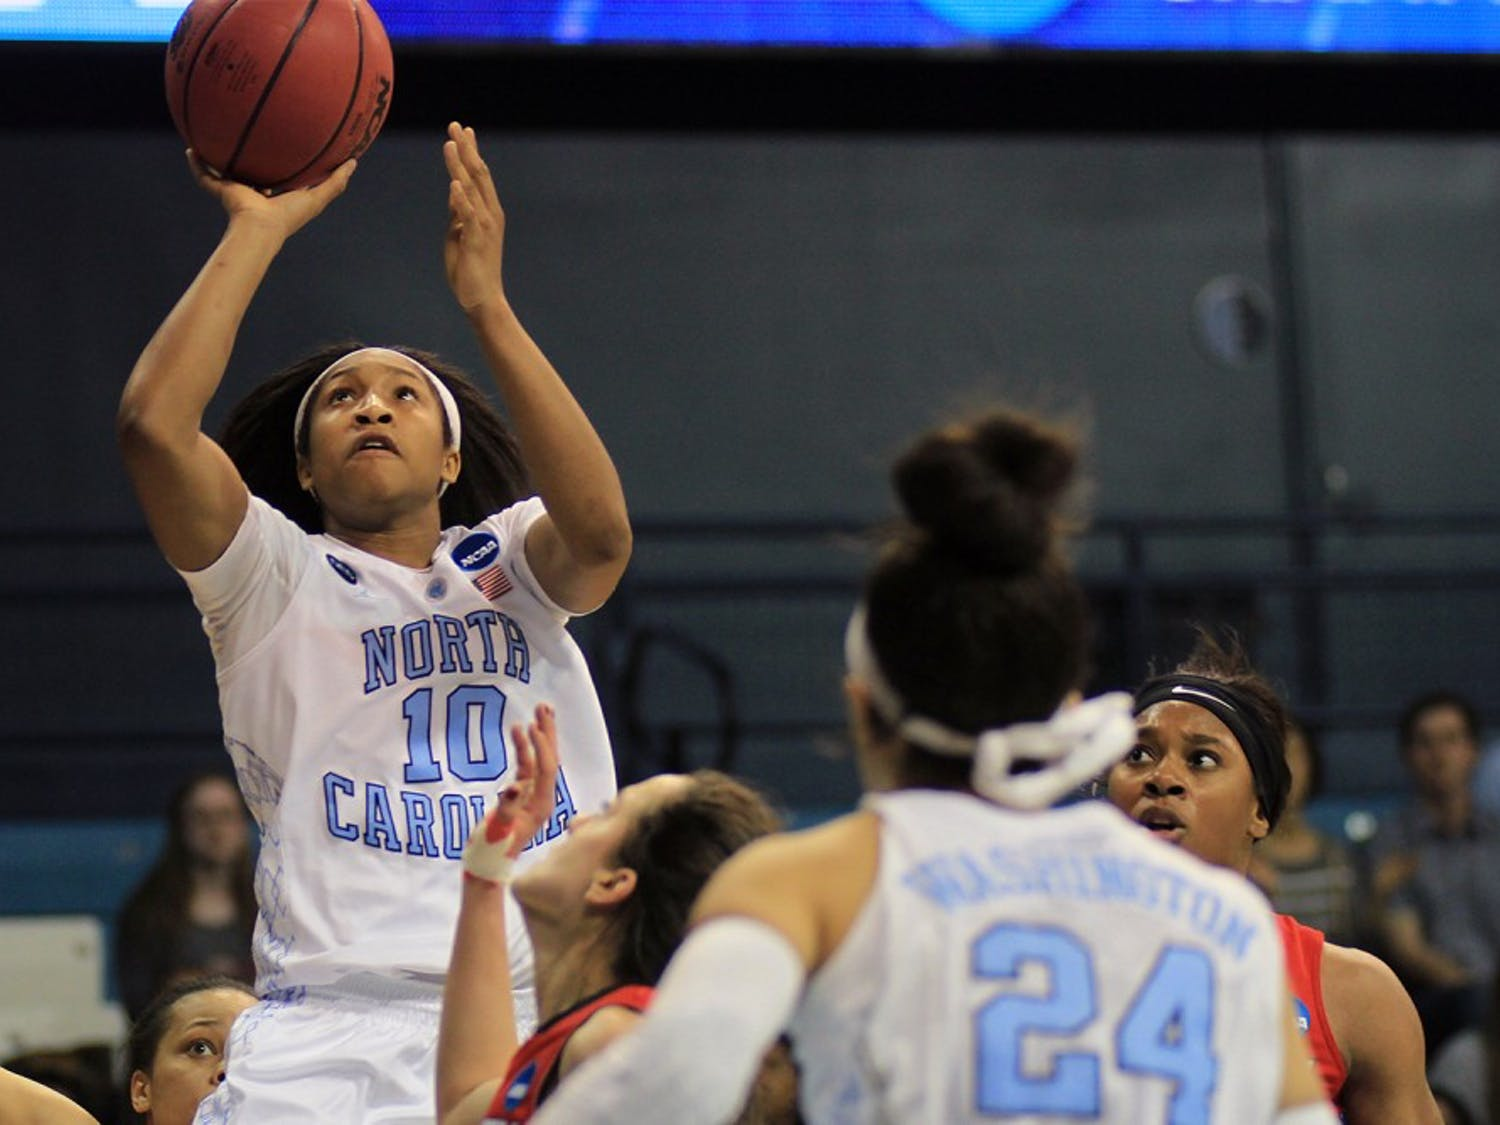 North Carolina senior guardDanielle Butts (10) takes a shot in the second half. Butts scored four points Saturday afternoon in Carmichael Arena.